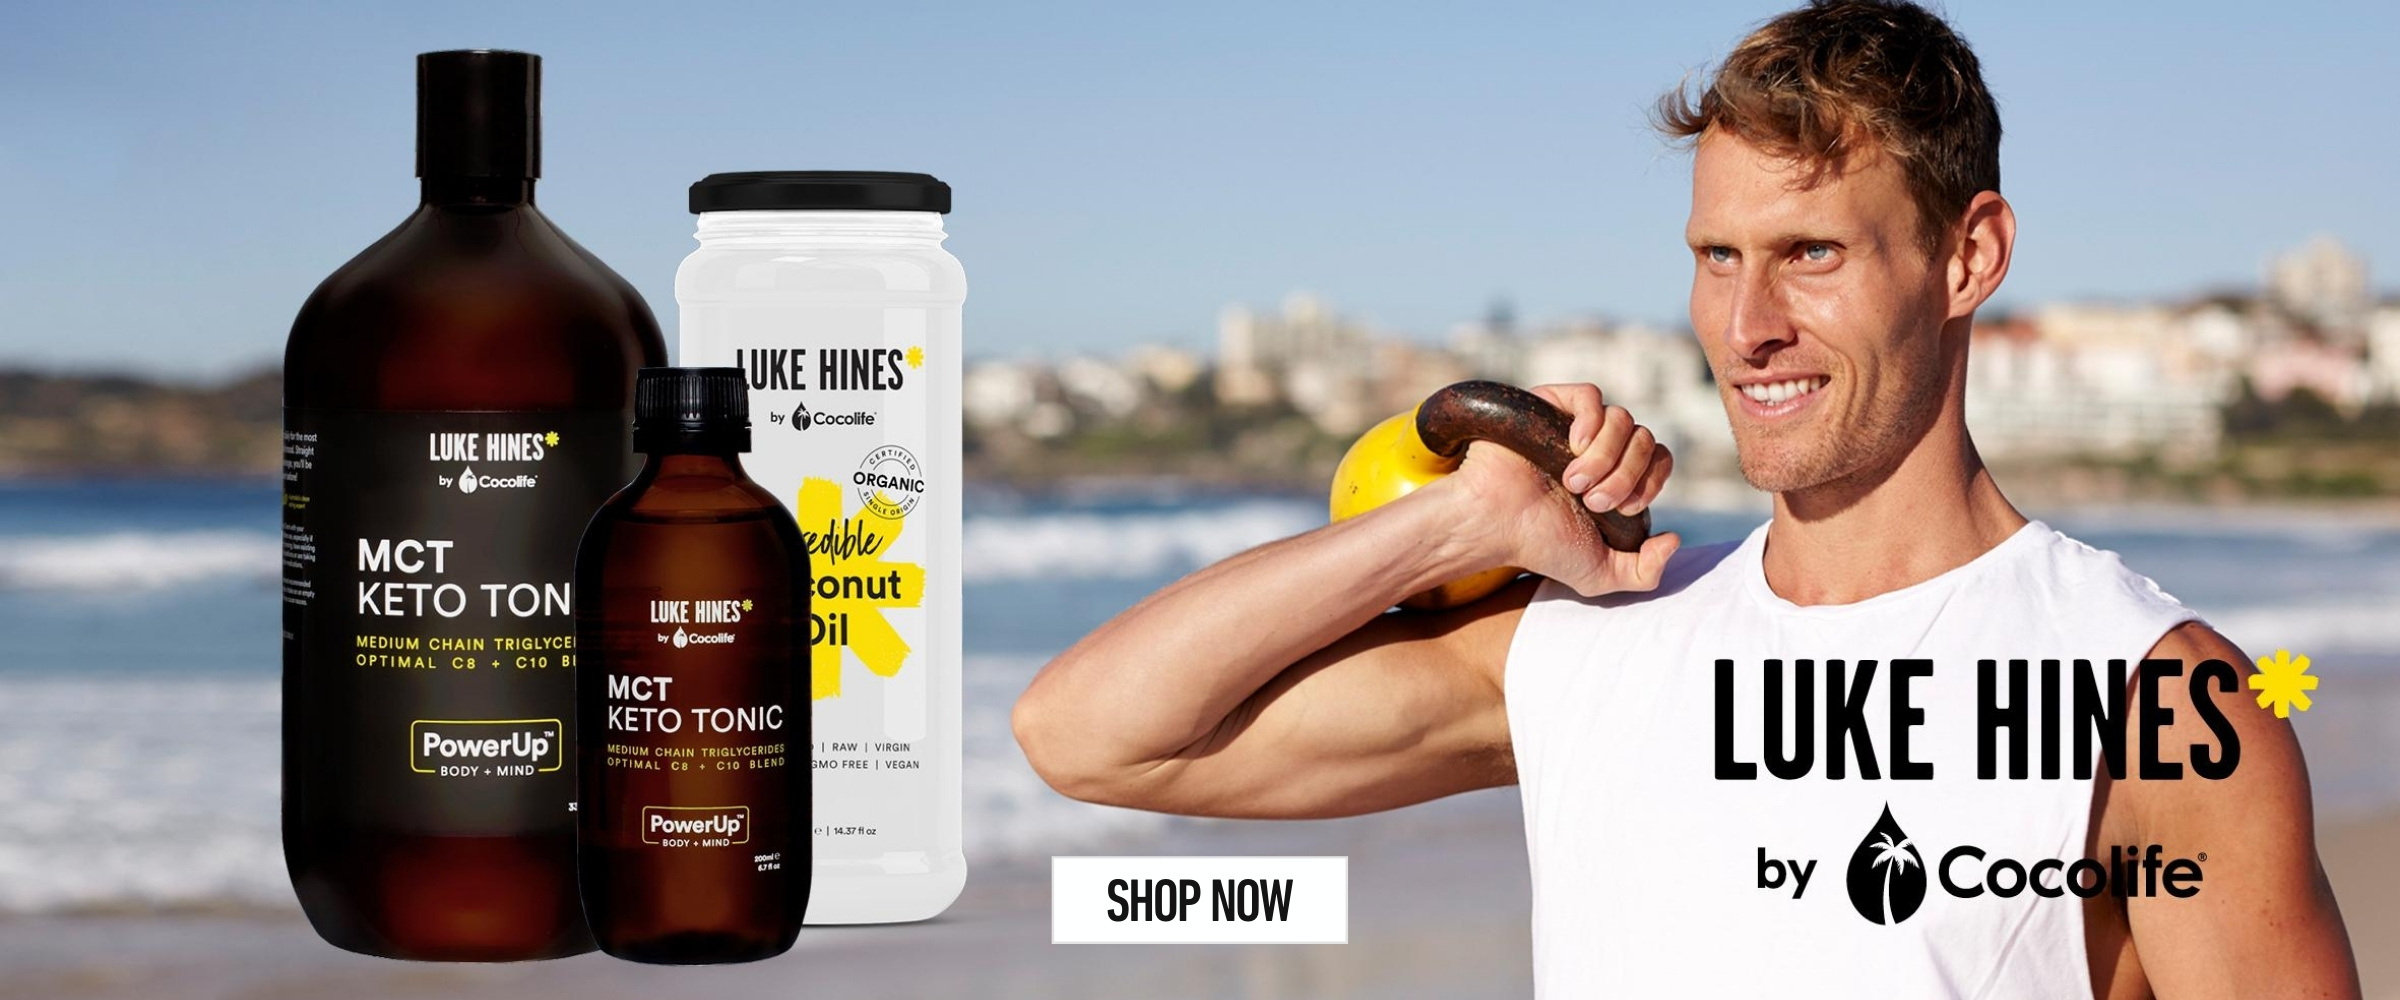 Luke Hines by Cocolife | MCT Keto Tonic, Organic Coconut Oil